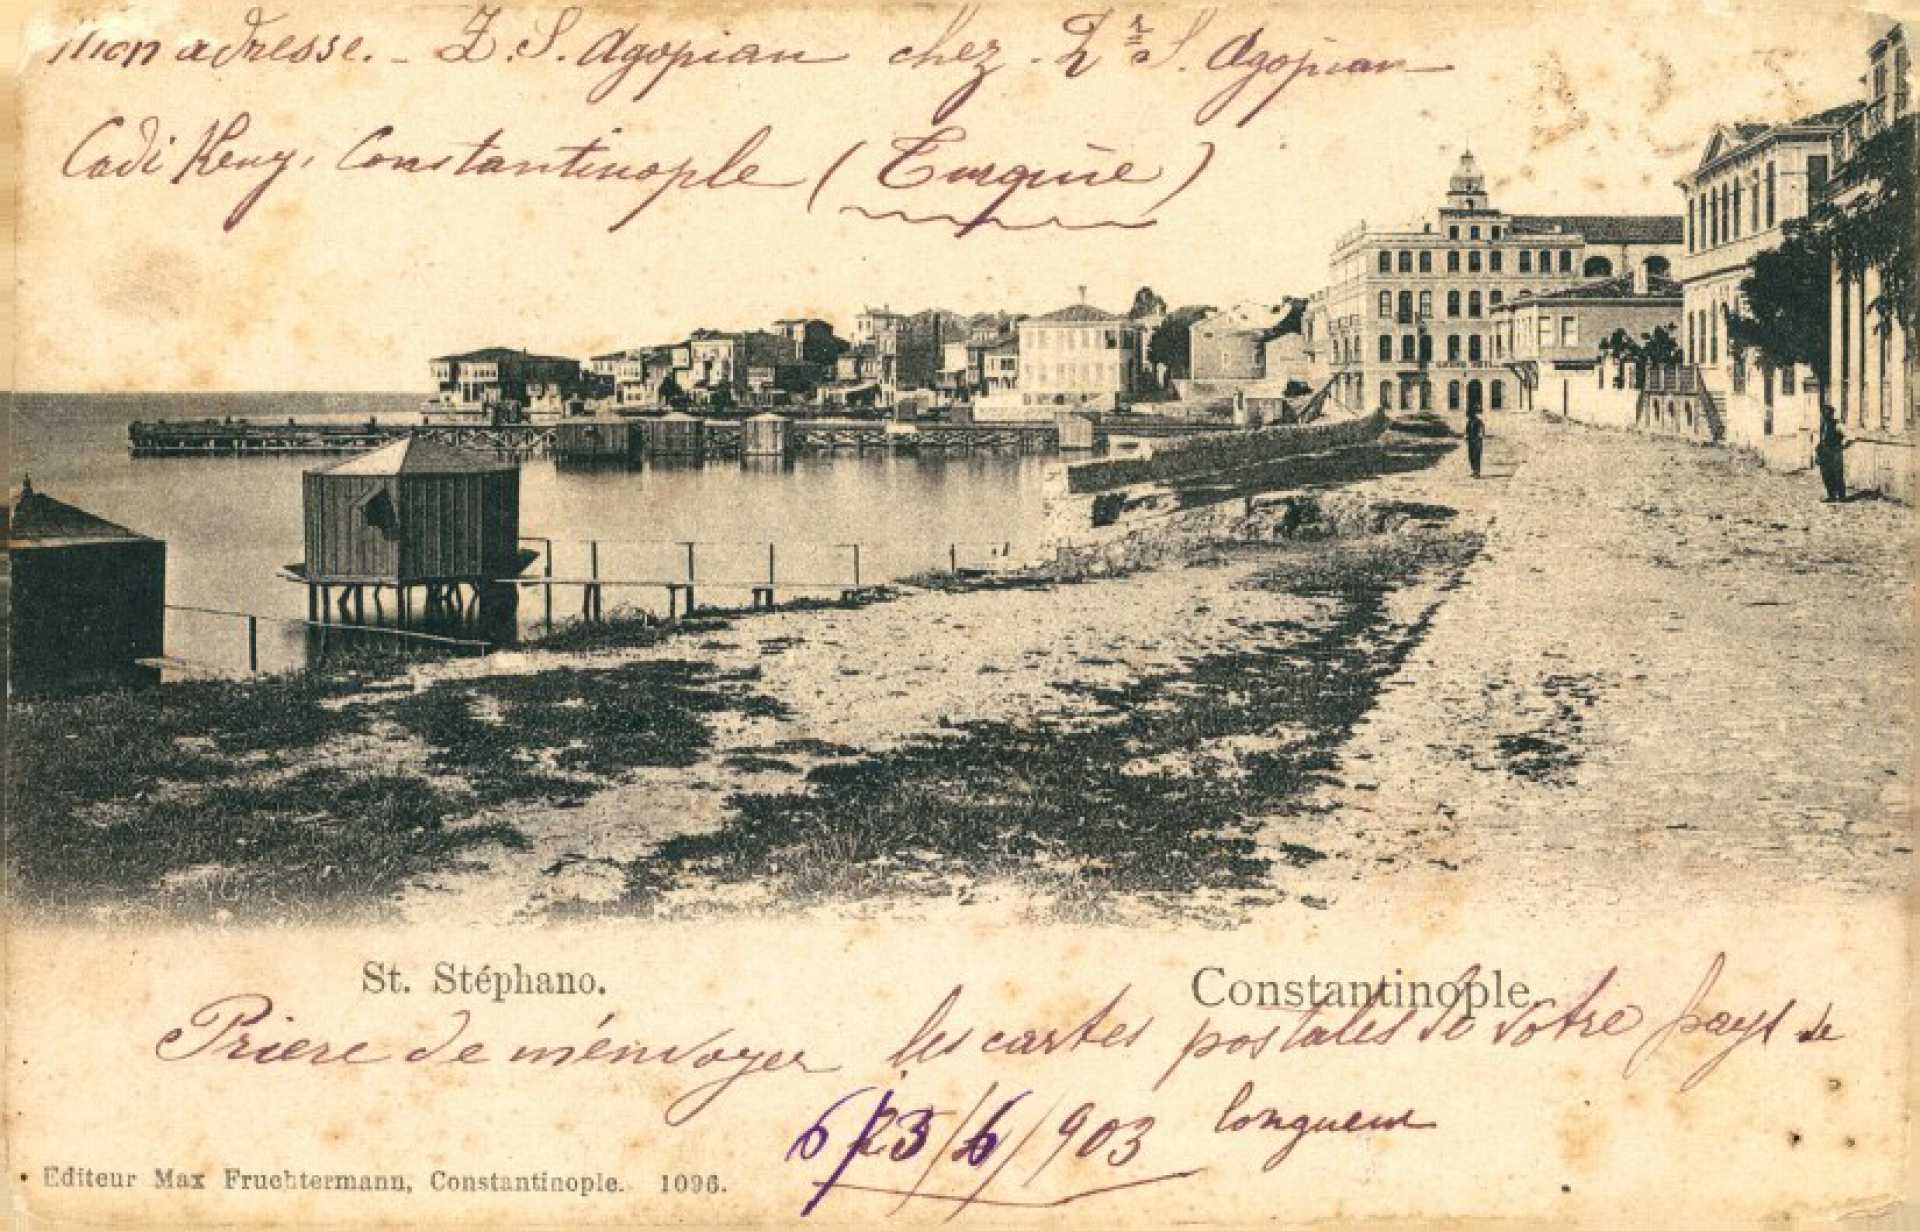 Constantinople. St. Stephano